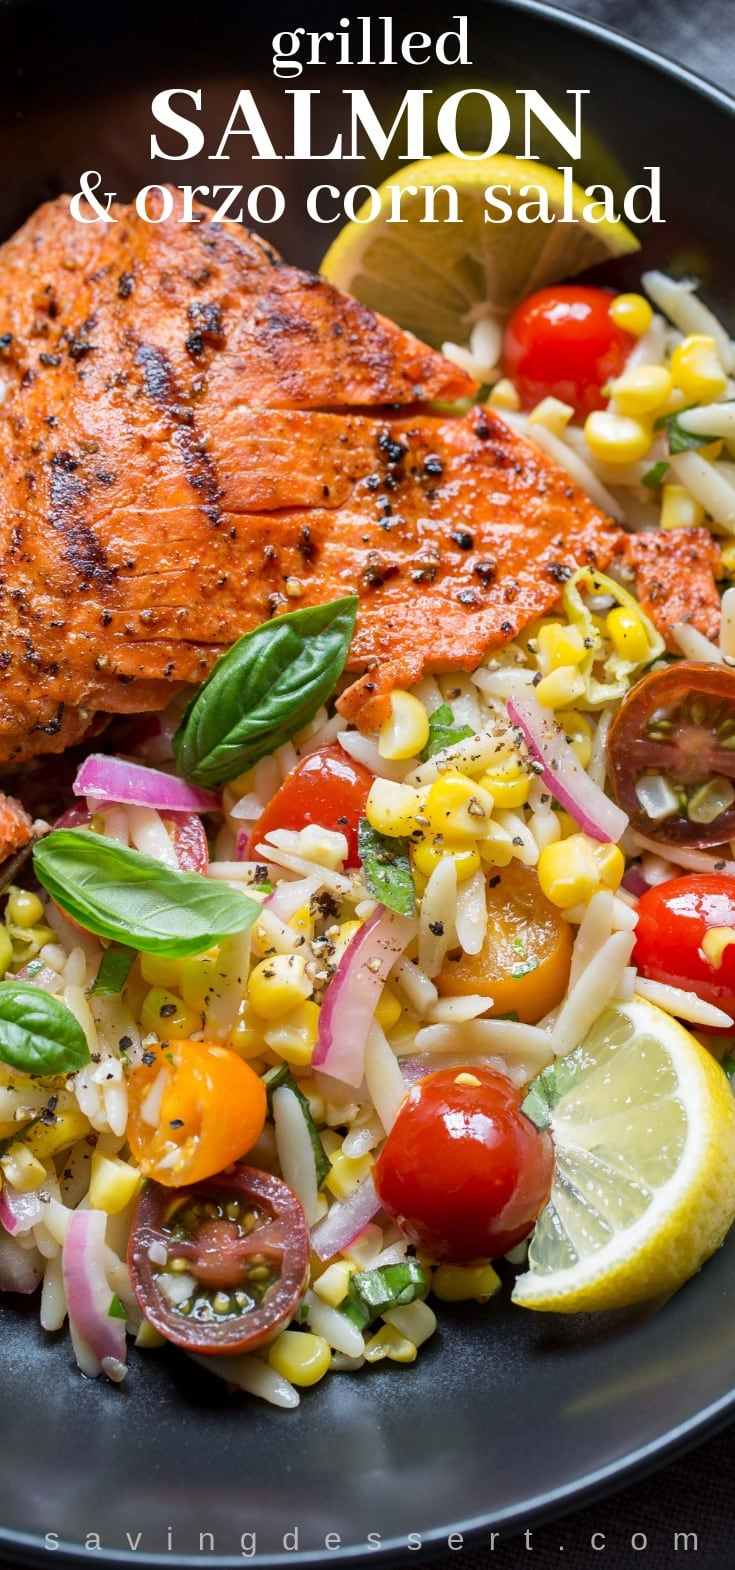 Grilled Salmon & Orzo Corn Salad ~ A light and refreshing orzo salad with sweet summer corn, tomatoes and onion with a lemon vinaigrette served with grilled salmon  #salmon #grilledsalmon #grilled #grilling #orzocornsalad #orzo #salmonsalad